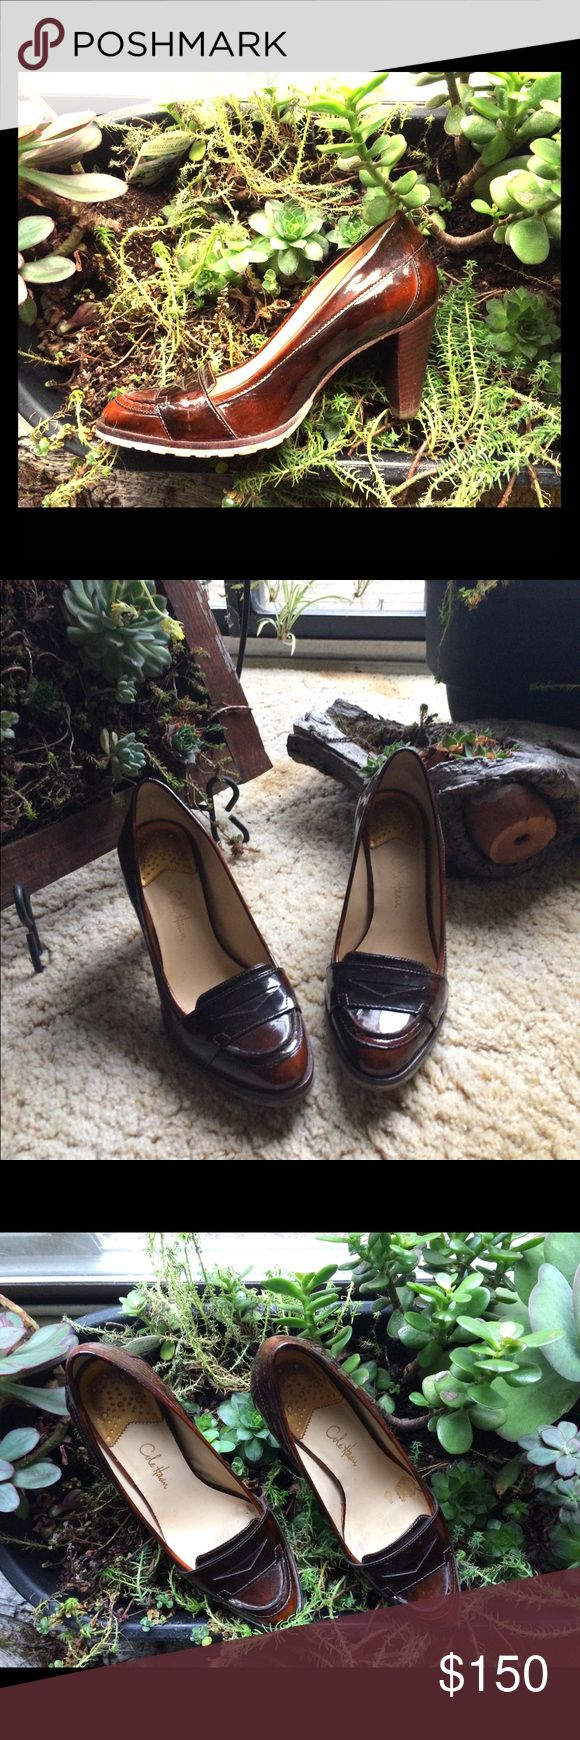 """Cole Haan High Heel Loafer Cole Haan High Heel Loafer  Size 7.5B Cushioned with Nike Air Brown, shiny, metallic color Heel 3"""" In great condition. Only worn a couple times. Cole Haan Shoes Heels"""